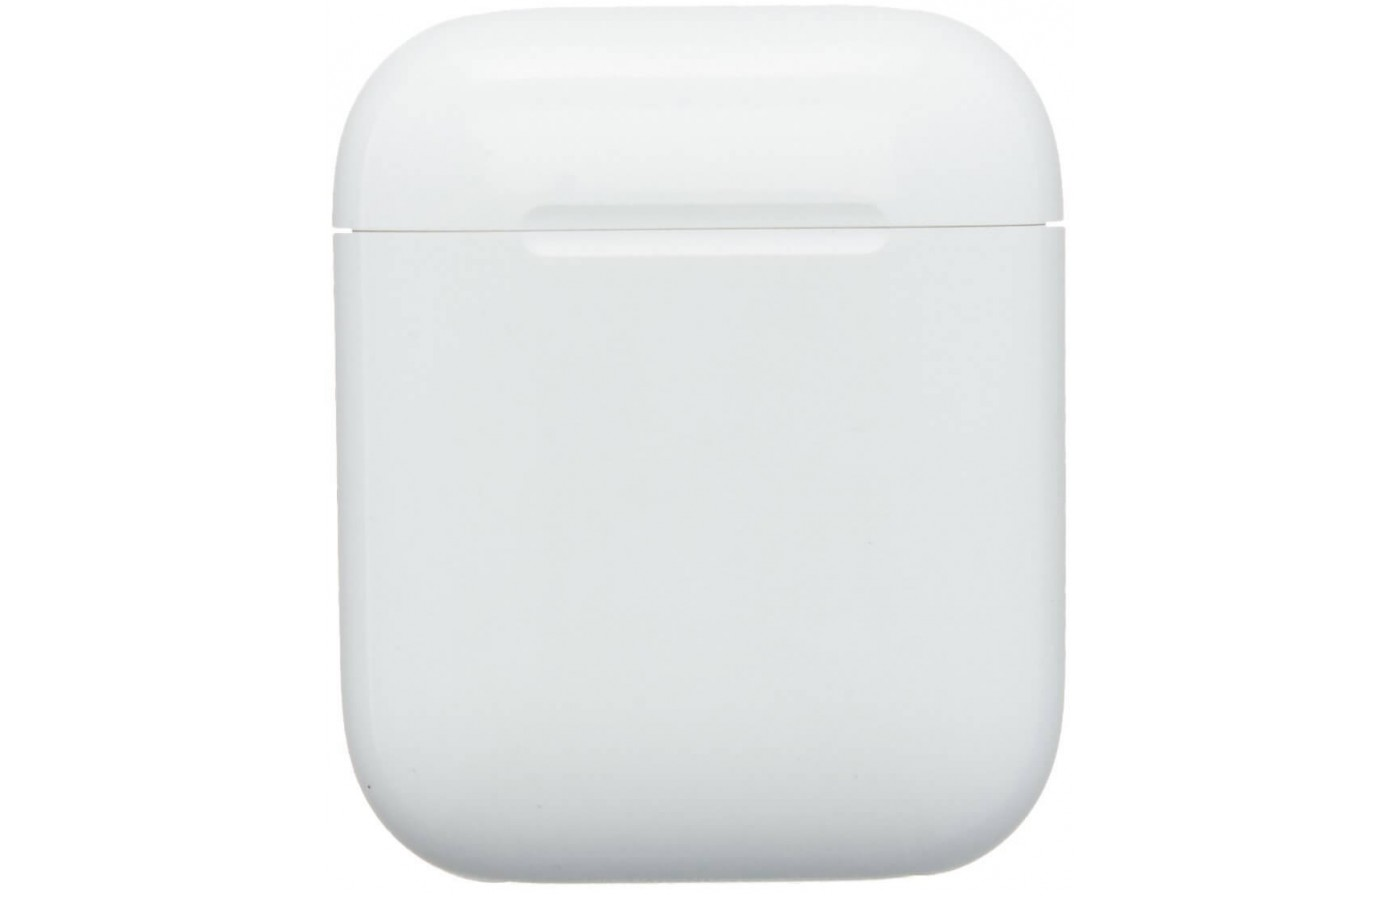 The Apple Air Pods feature a 5-hour battery life